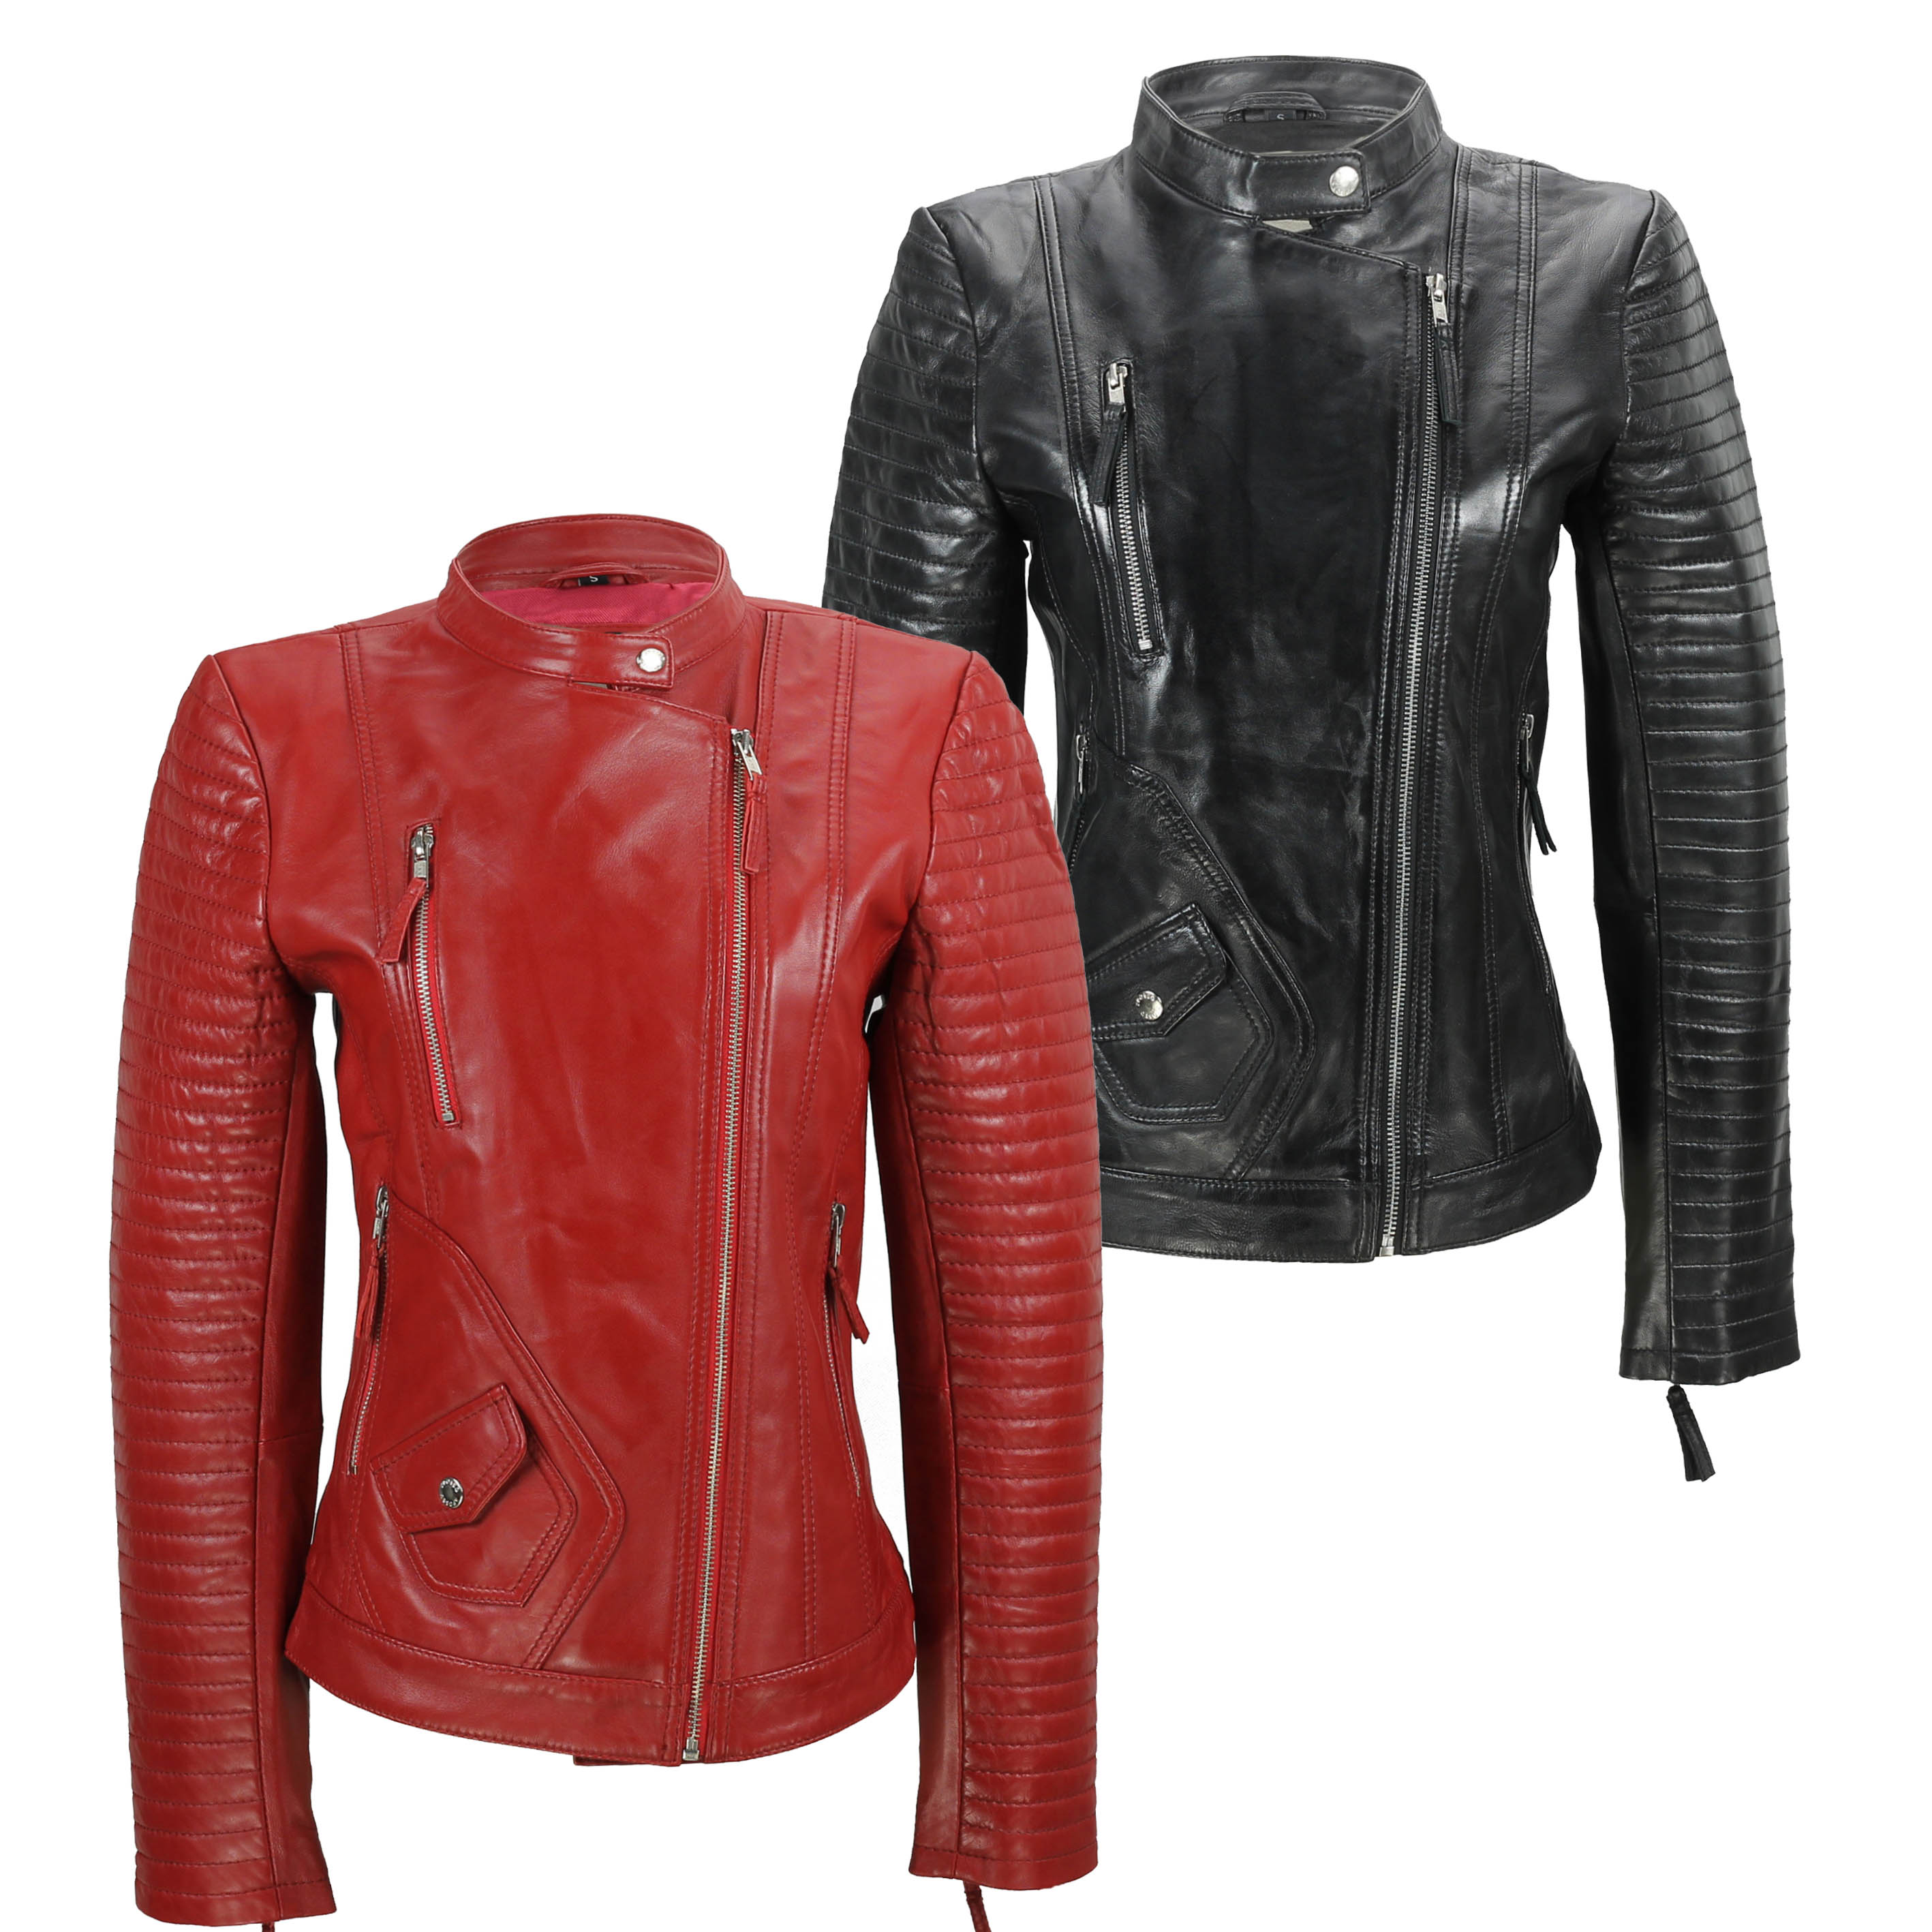 127a6cf07 Details about Ladies Women's Real Soft Leather Biker Jacket Vintage Fitted  Style in Black Red